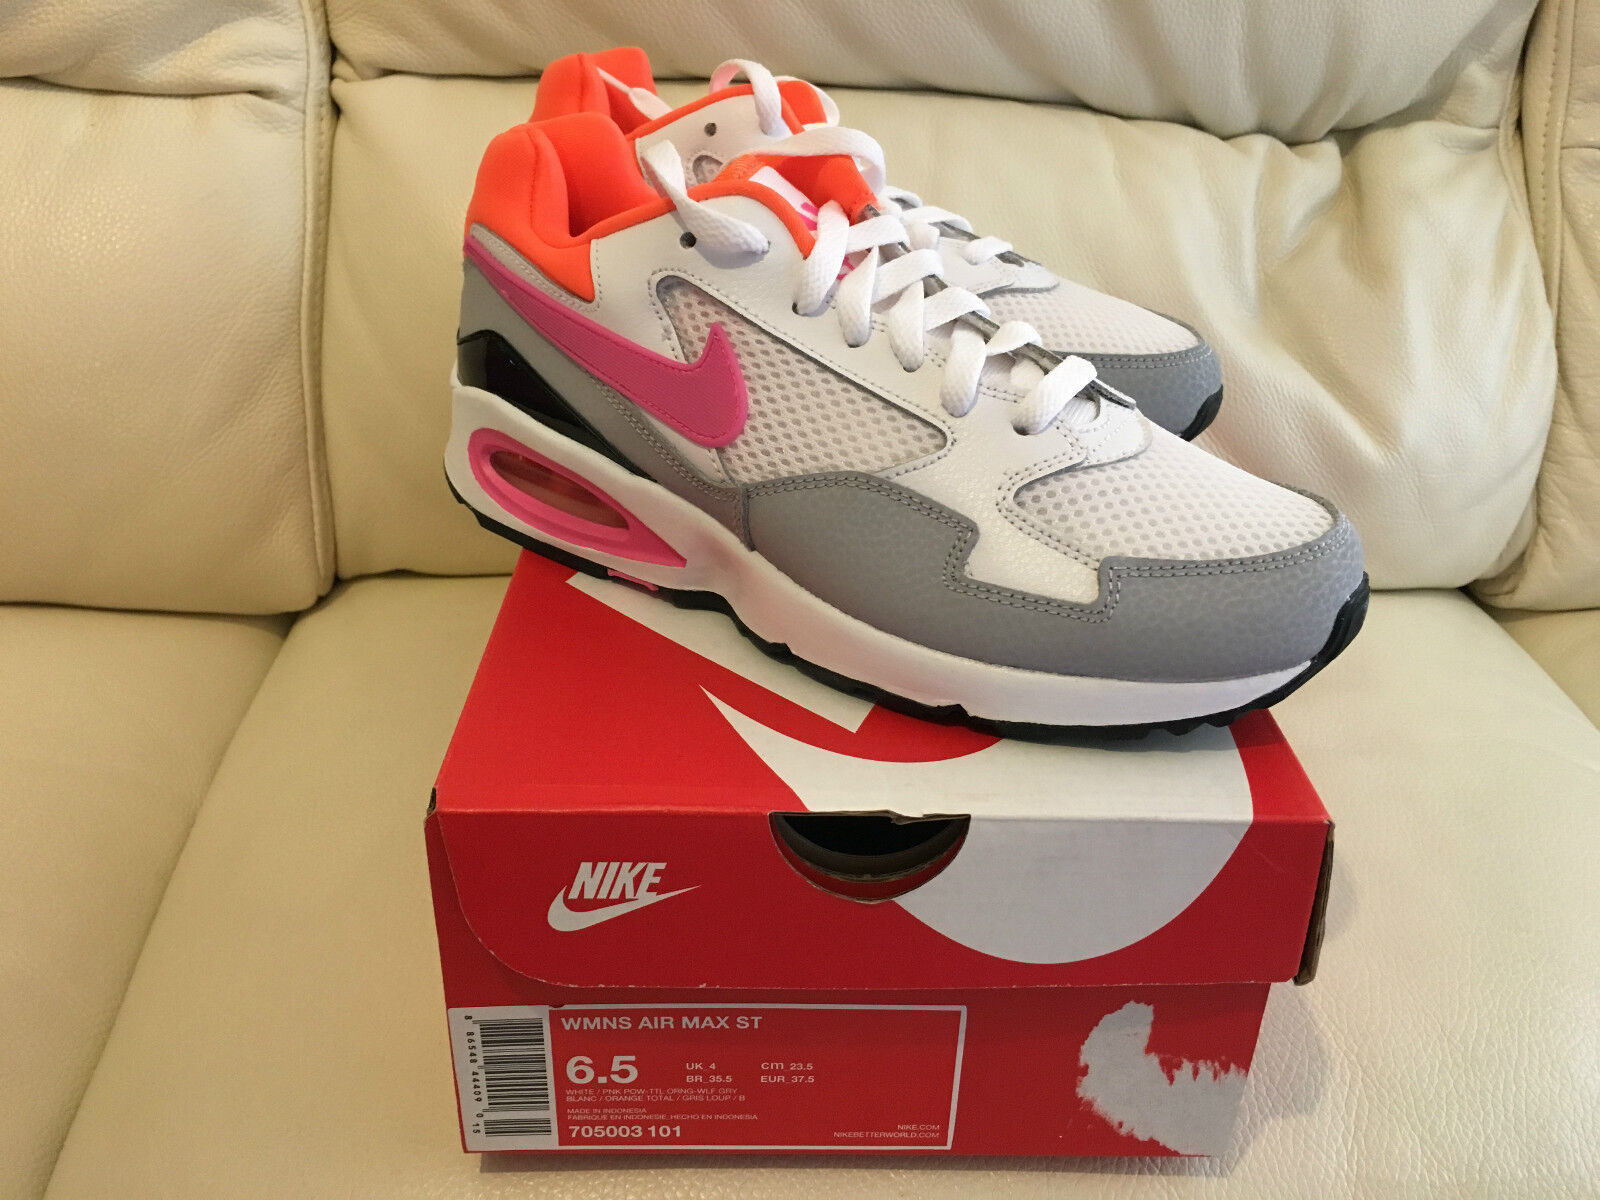 NIKE damen AIR MAX ST ALL GrößeS UK 4-8 LIMITED EDITION NEW LOOK